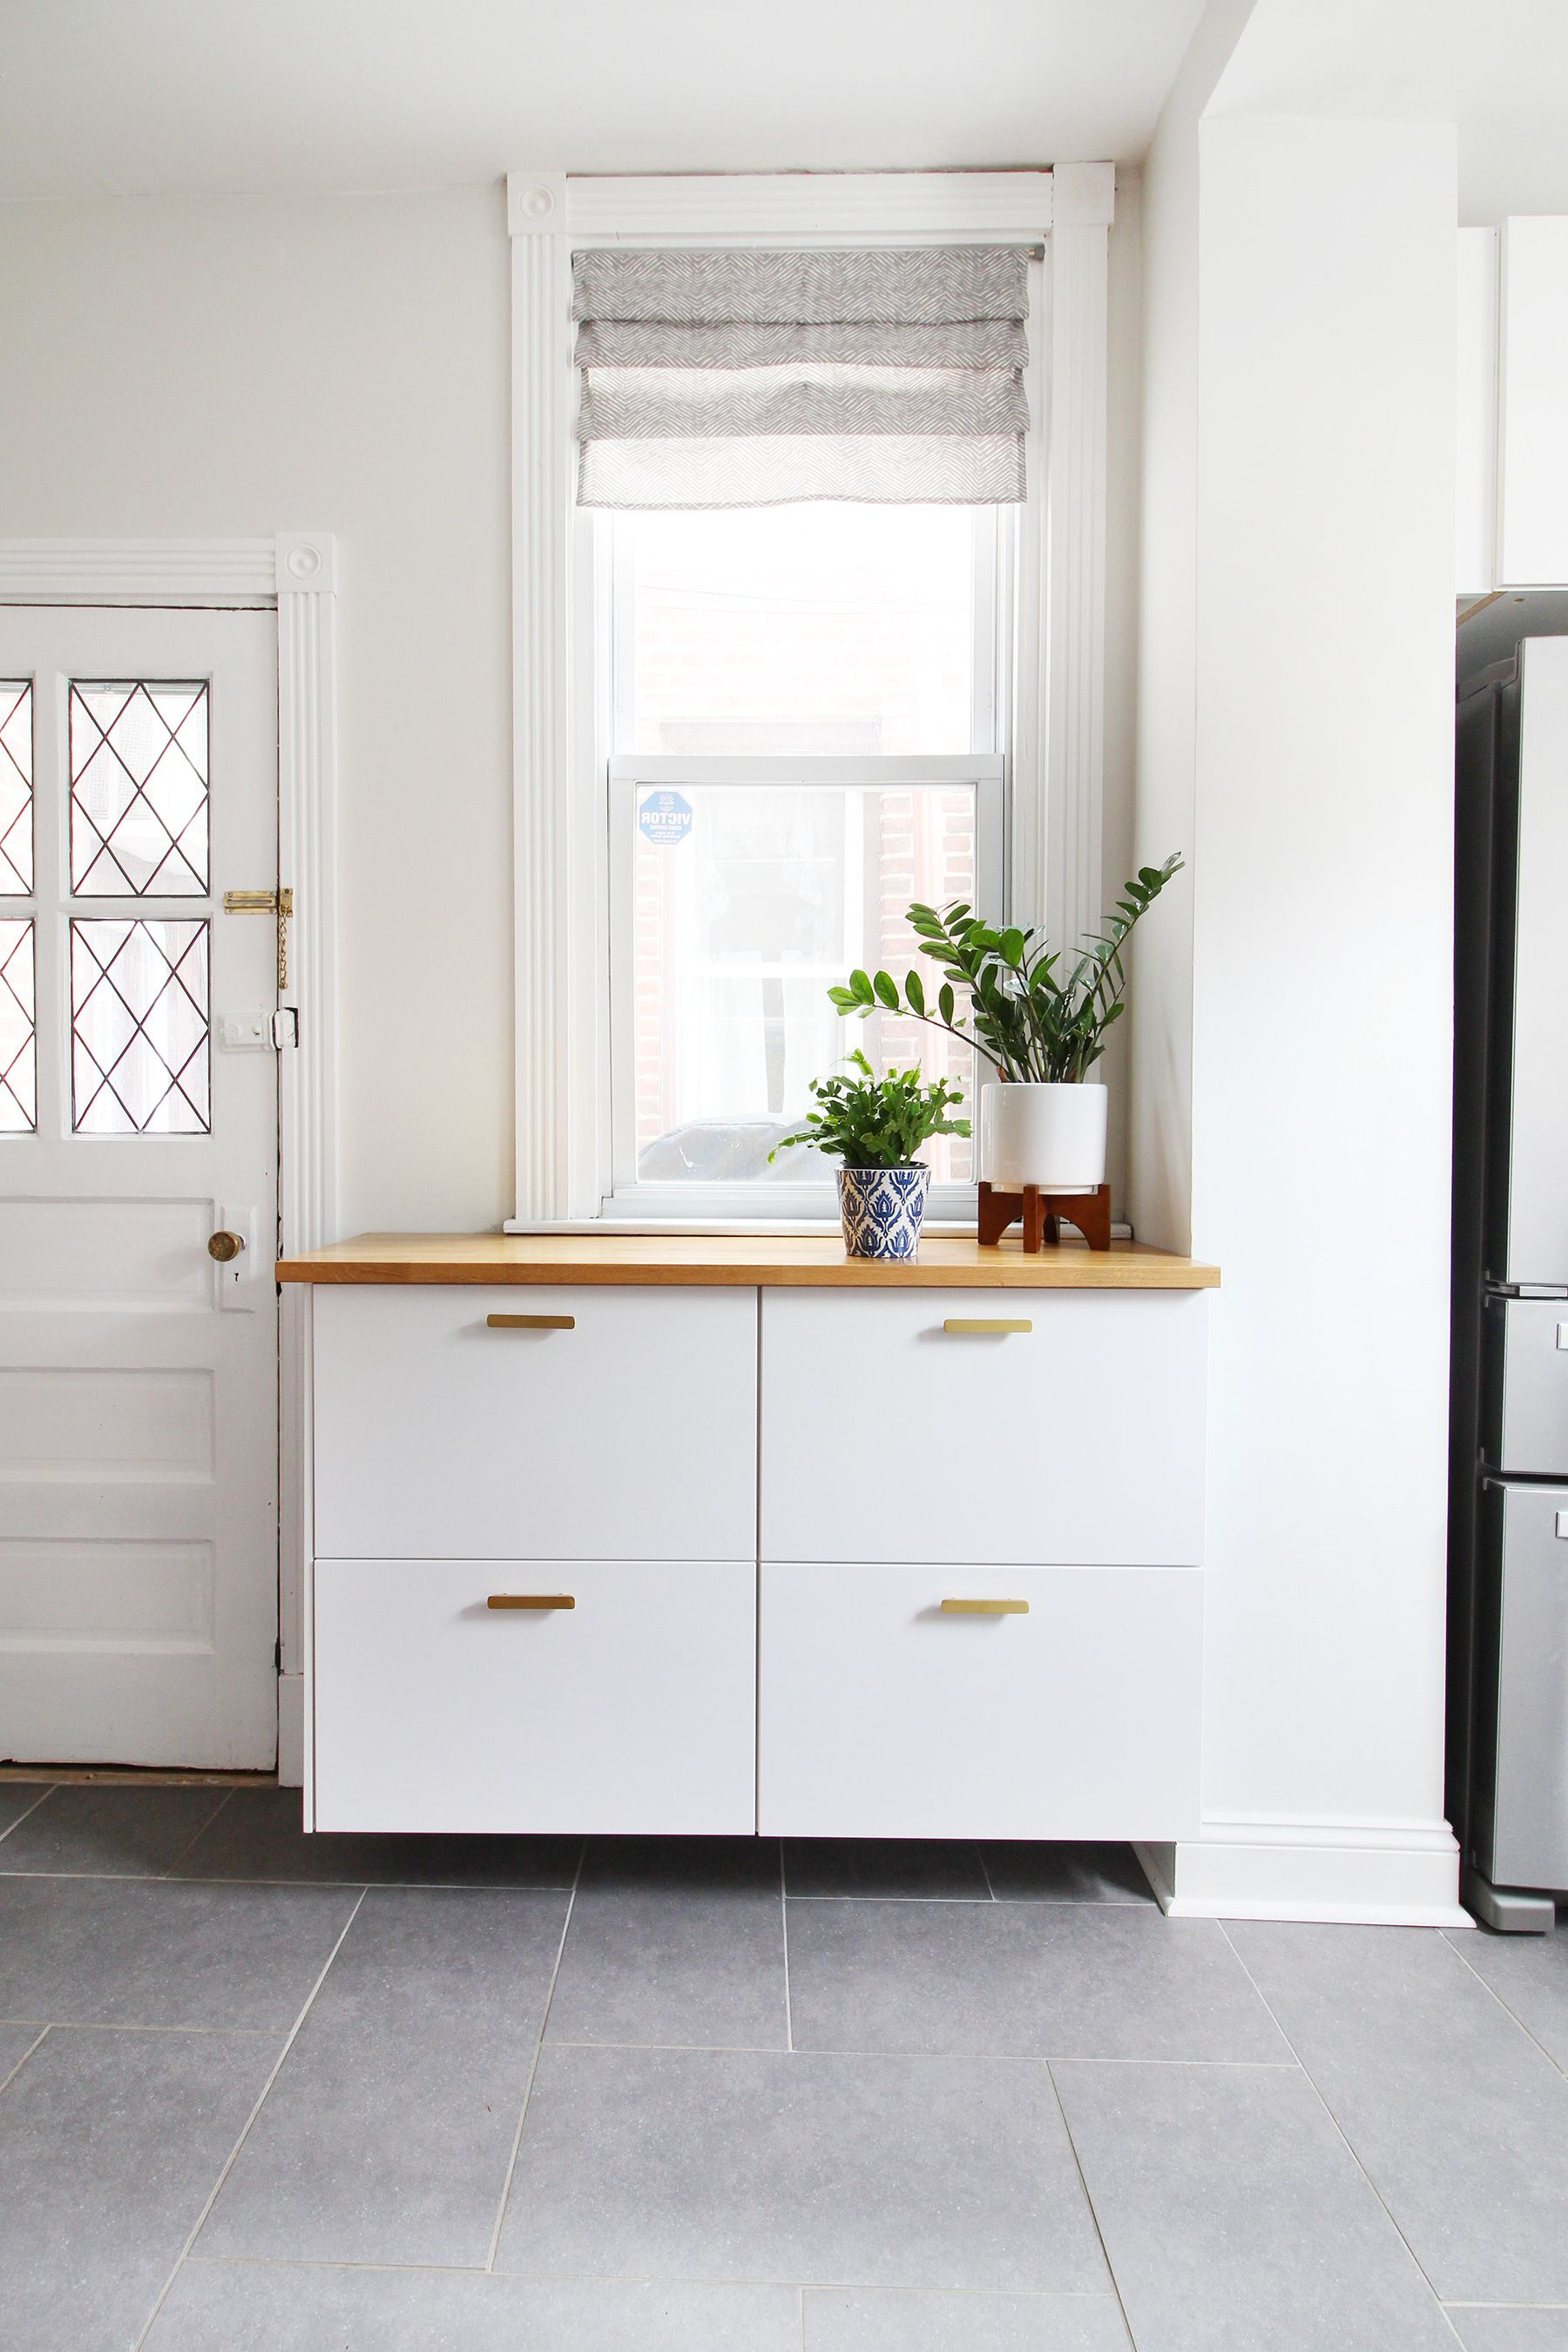 Our Modern White Kitchen Renovation Two Years Later | Mix & Match ...